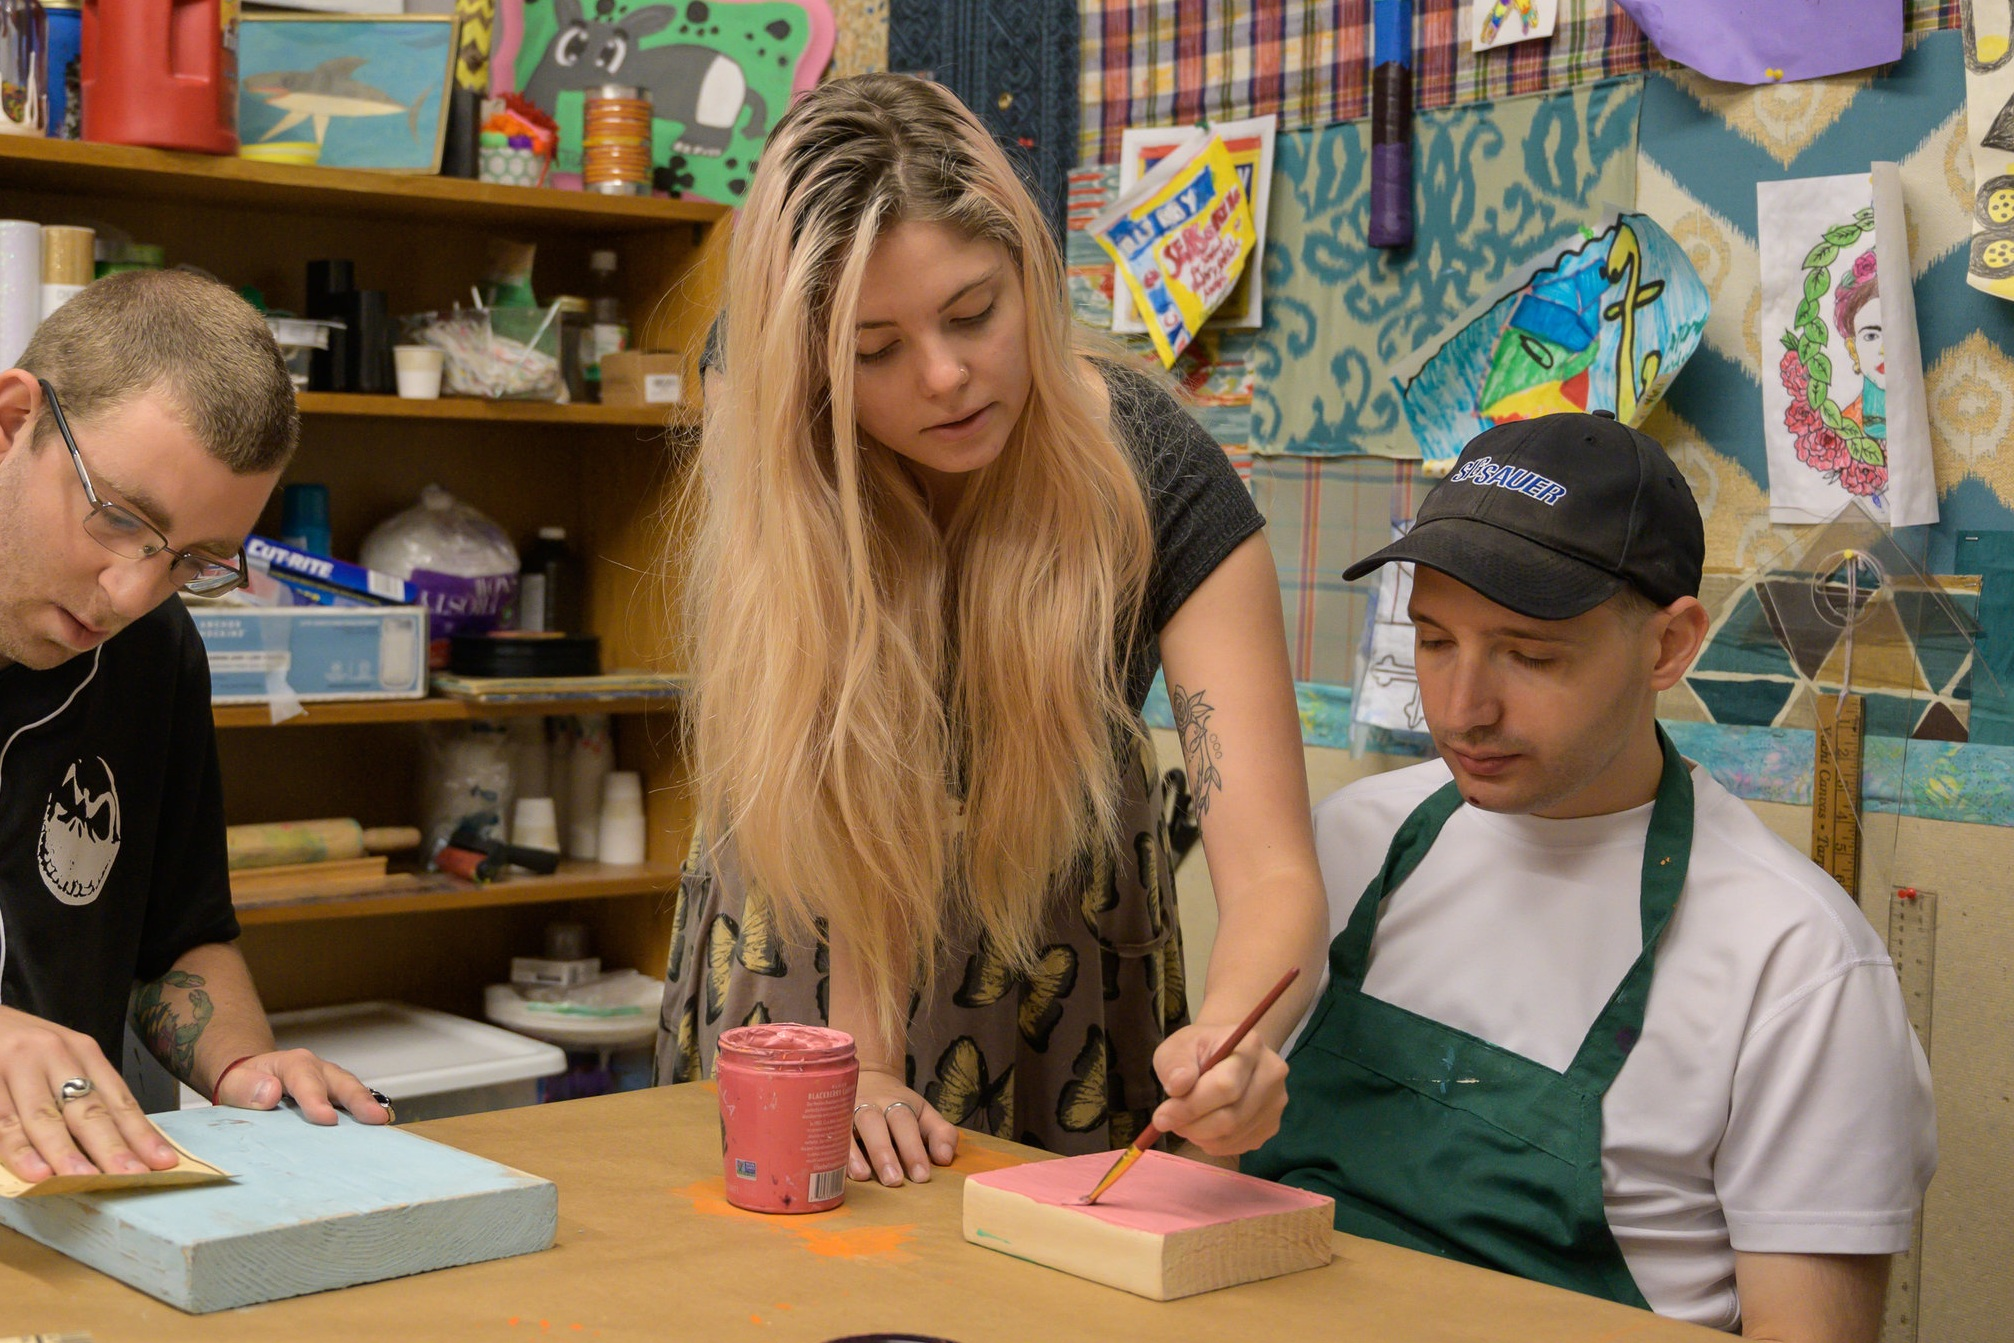 Drew Putzel Creative Arts Program - The Drew Putzel Creative Arts Program uses art as a therapeutic and creative outlet for our clients, and provides them an opportunity to have their own microbusinesses.